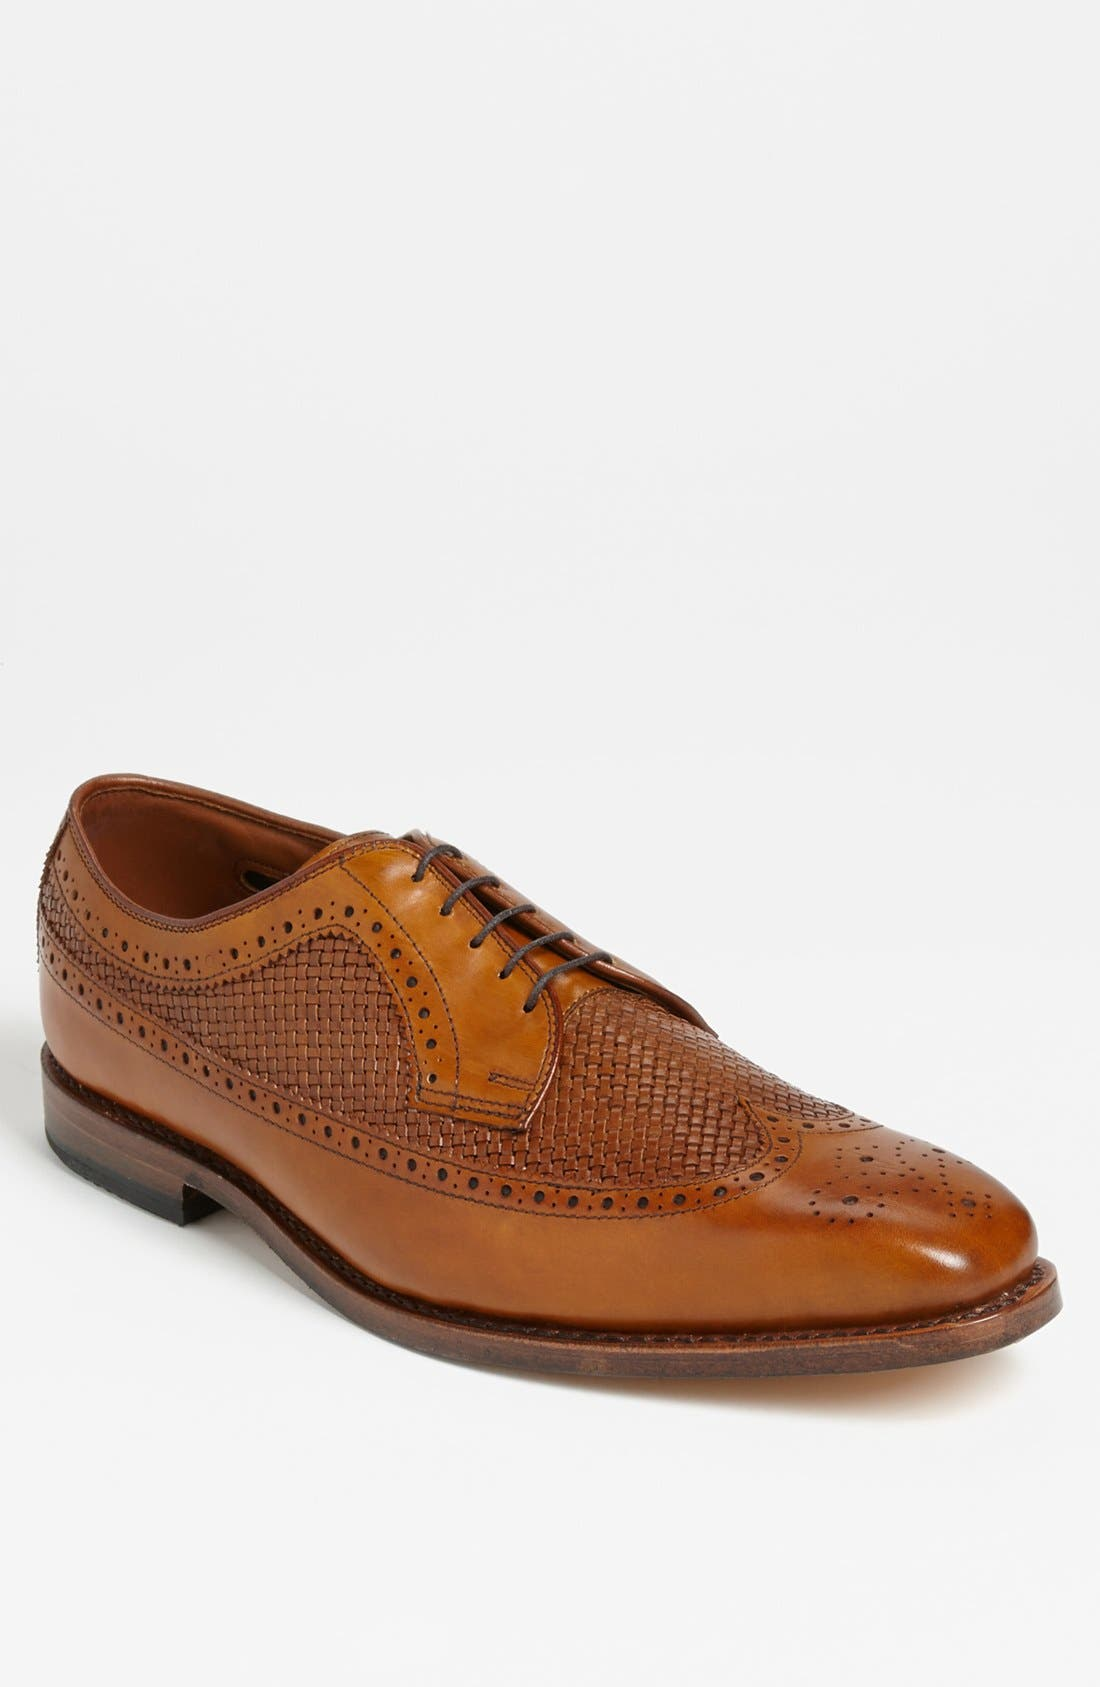 ALLEN EDMONDS,                             'Boca Raton' Longwing,                             Main thumbnail 1, color,                             210